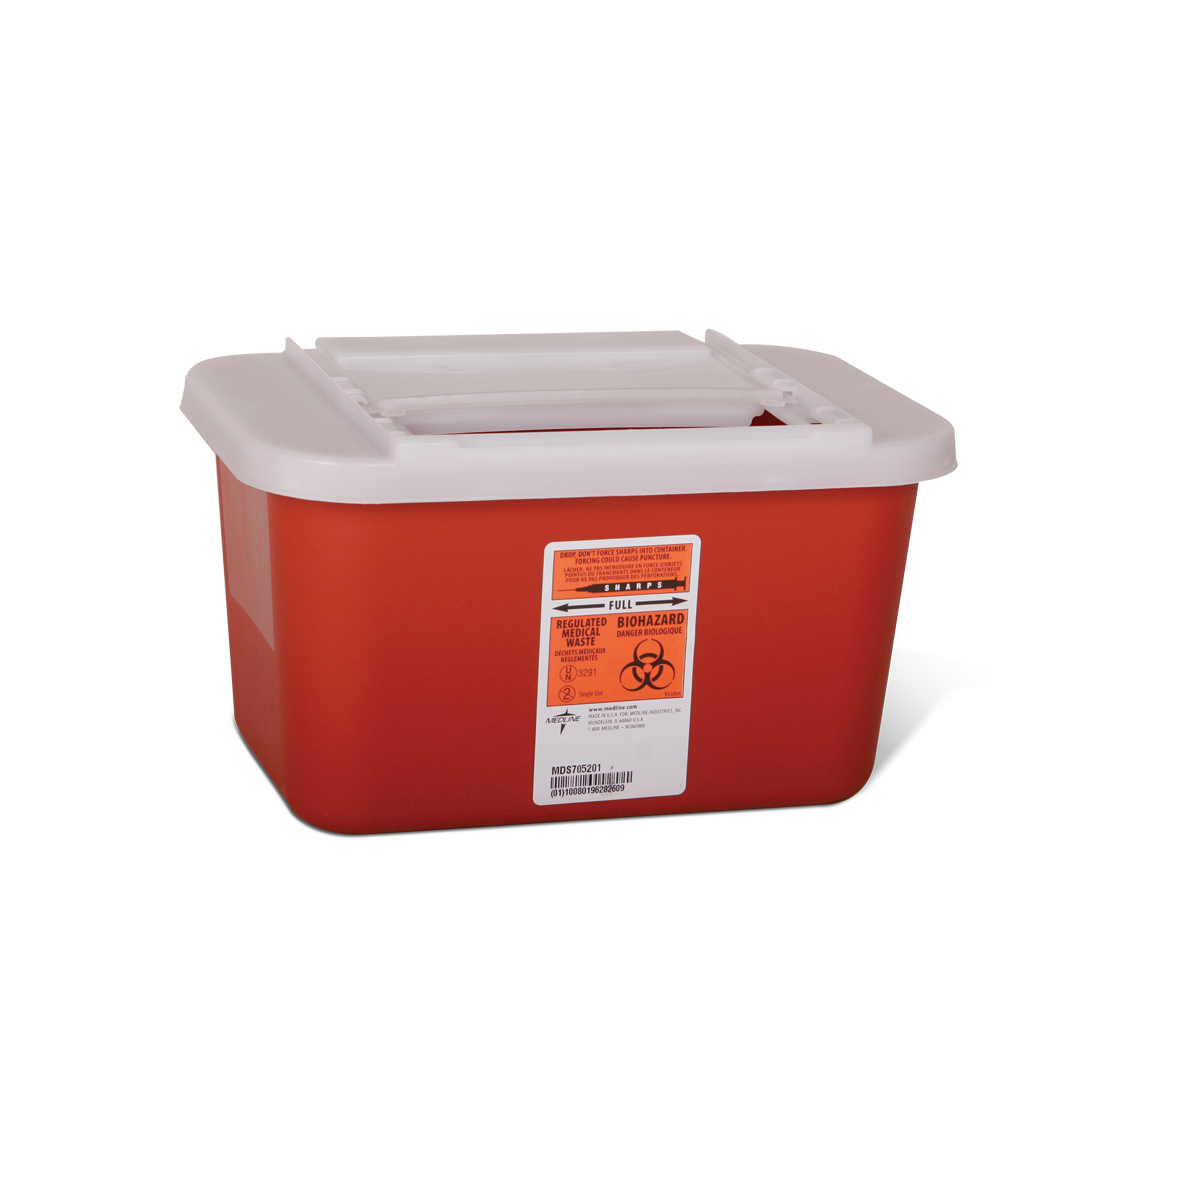 MedLine - Sharps Container 1 Galon Red - MDS-7052011Product Page | More